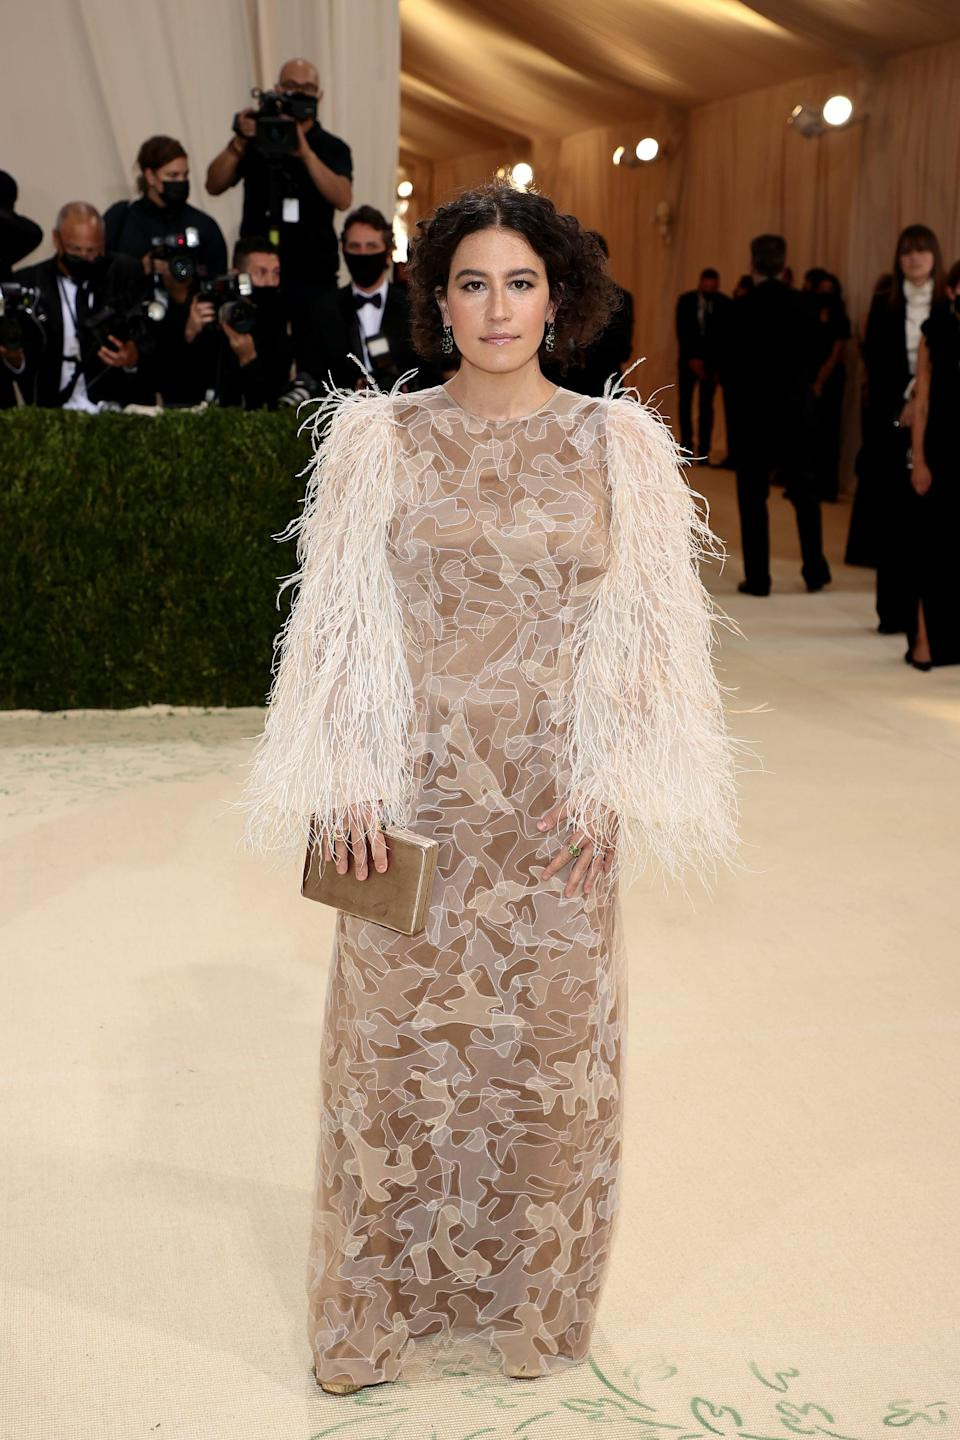 <p>Ilana Glazer rocked a custom, tulle Aliétte gown with feathered sleeves by founder Jason Rembert.</p>